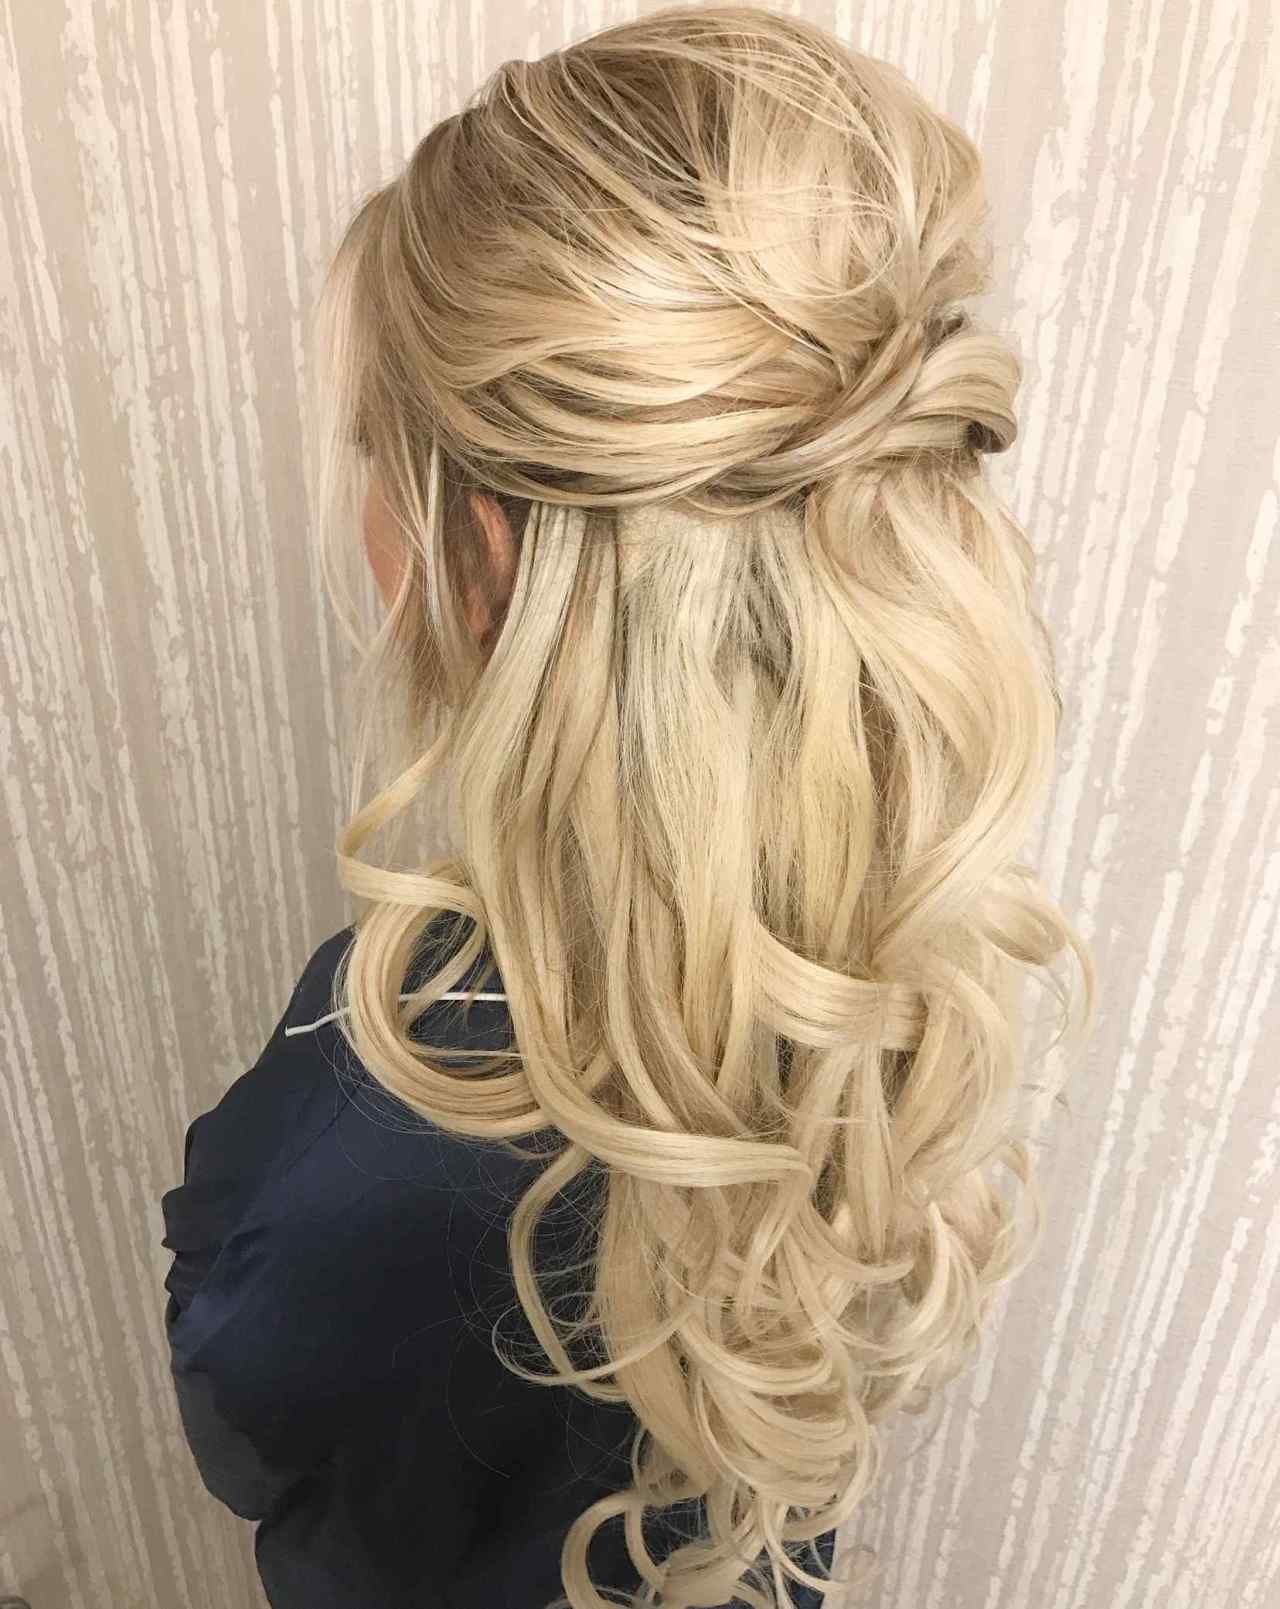 Wedding Hairstyles Updo With Veil Curls Brides Half Up Half Down Luxury Half Up Half Down By Shelbywhite Hmu Hair Pinterest With Images Wedding Hairstyles Bridesmaid Wedding Hairstyles For Long Hair